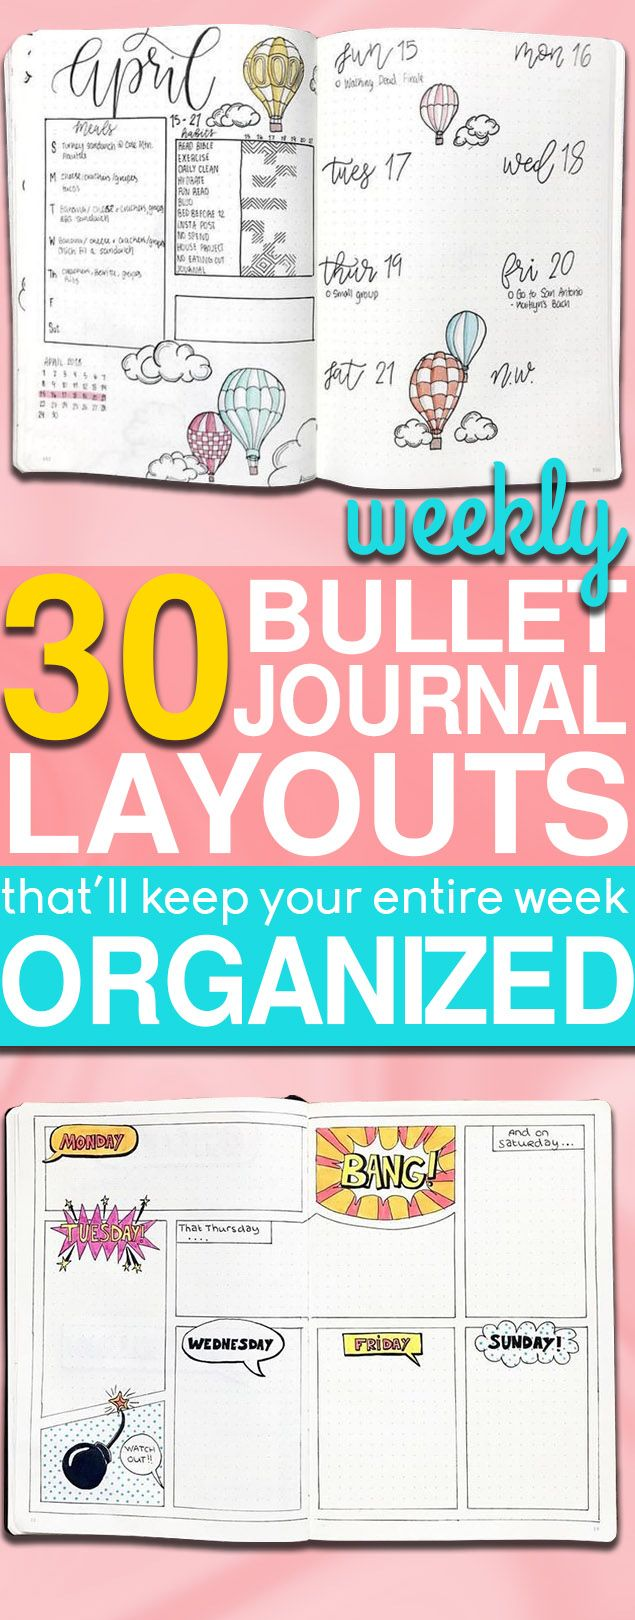 30 Bullet Journal Weekly Spread Ideas To Organize Your Entire Week